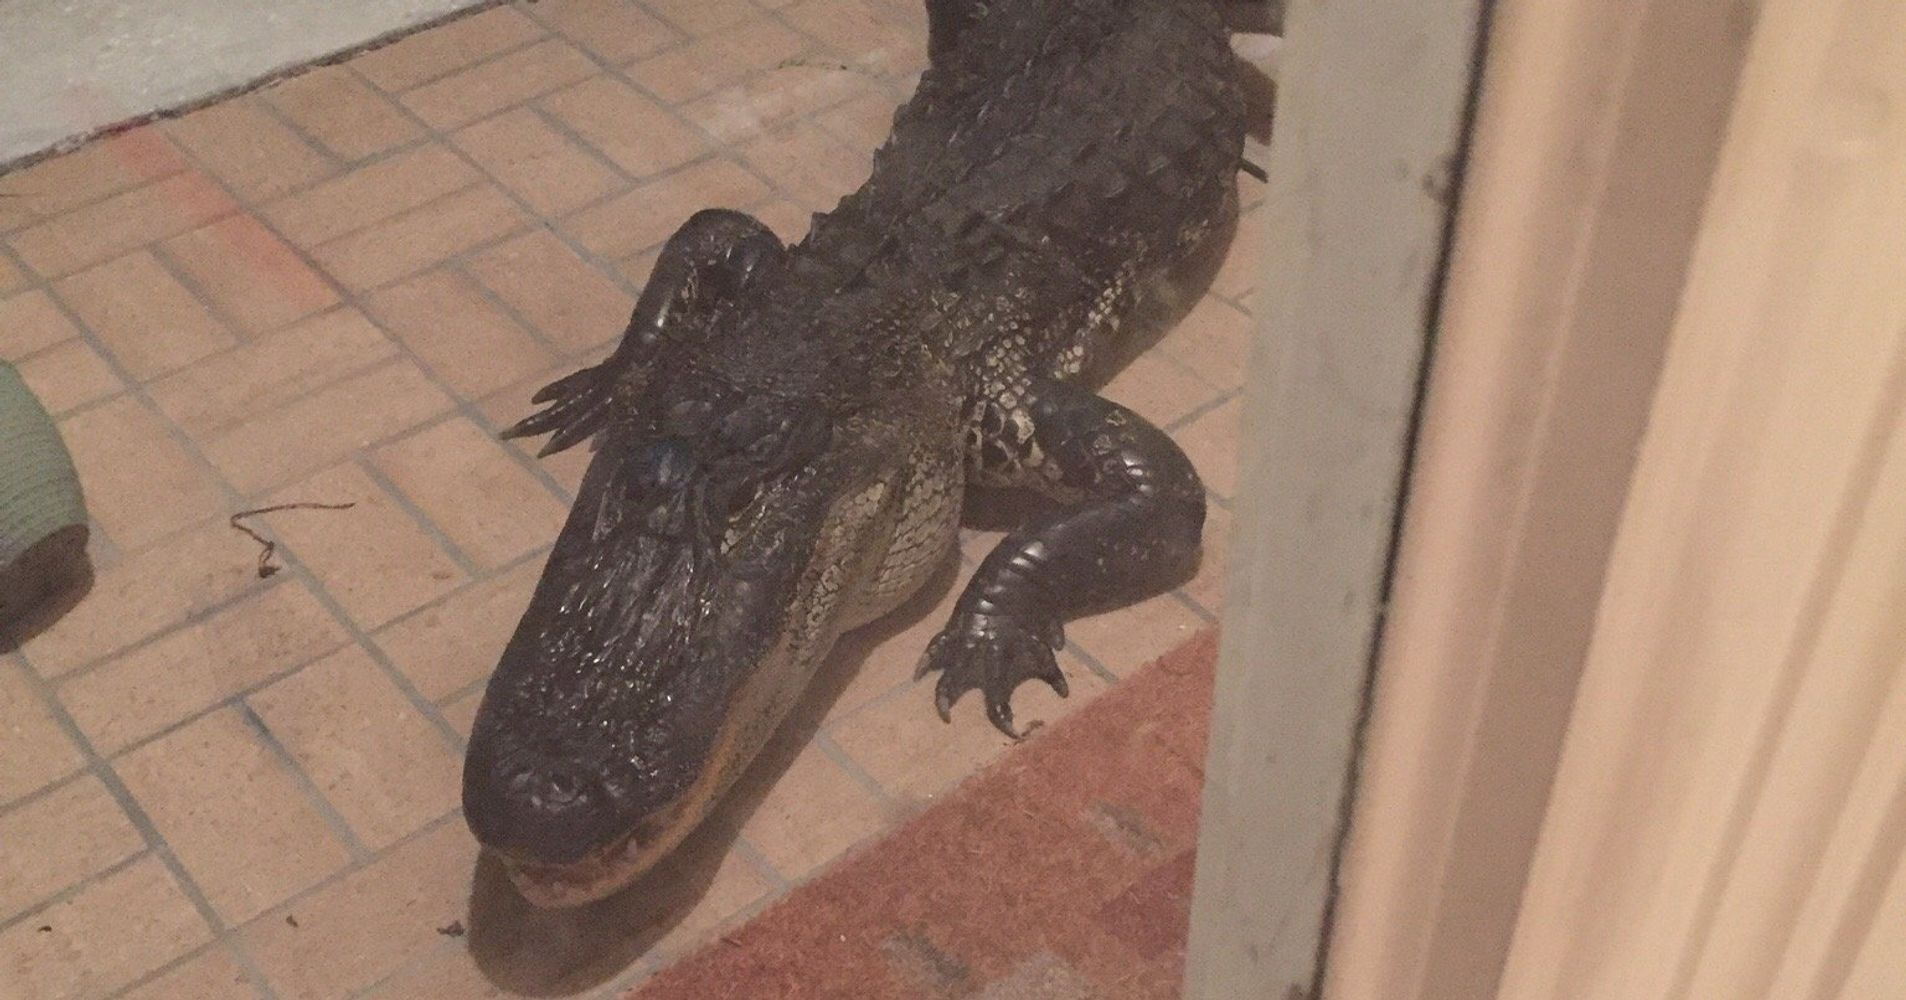 Massive 10 Foot Alligator Greets Florida Man On Doorstep Huffpost